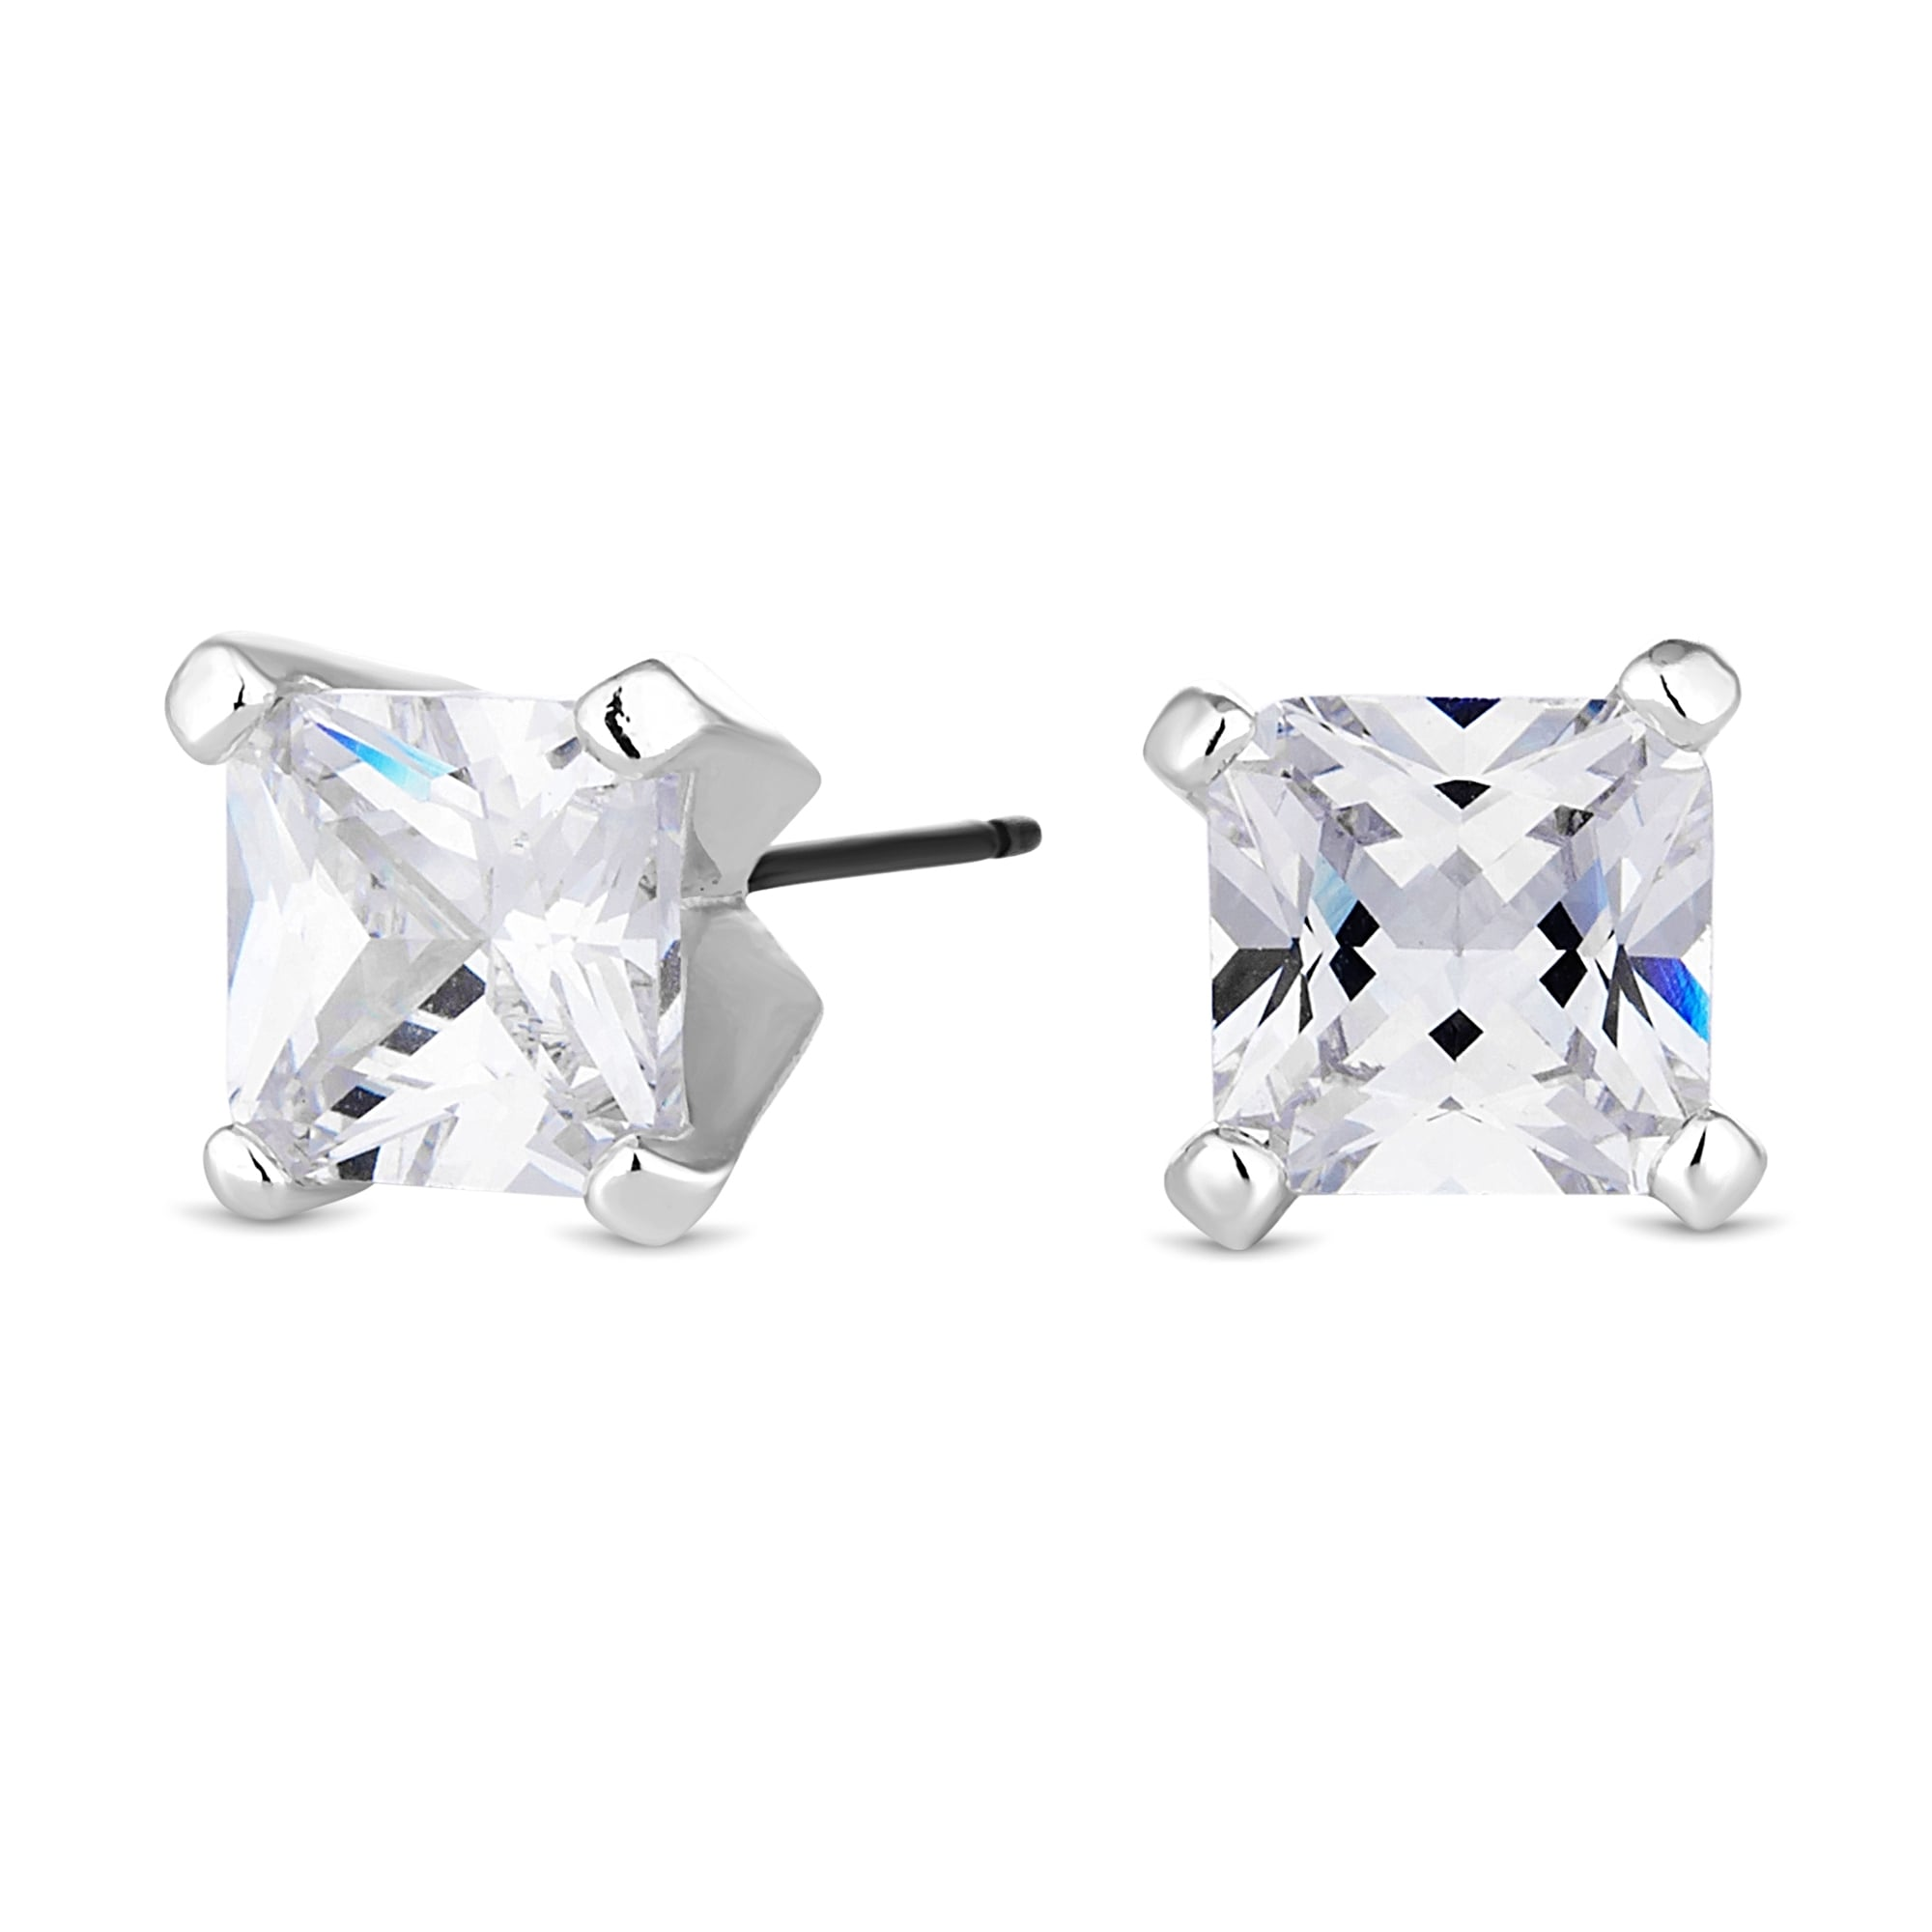 jewellery stud earrings dive image product chaparral of studio